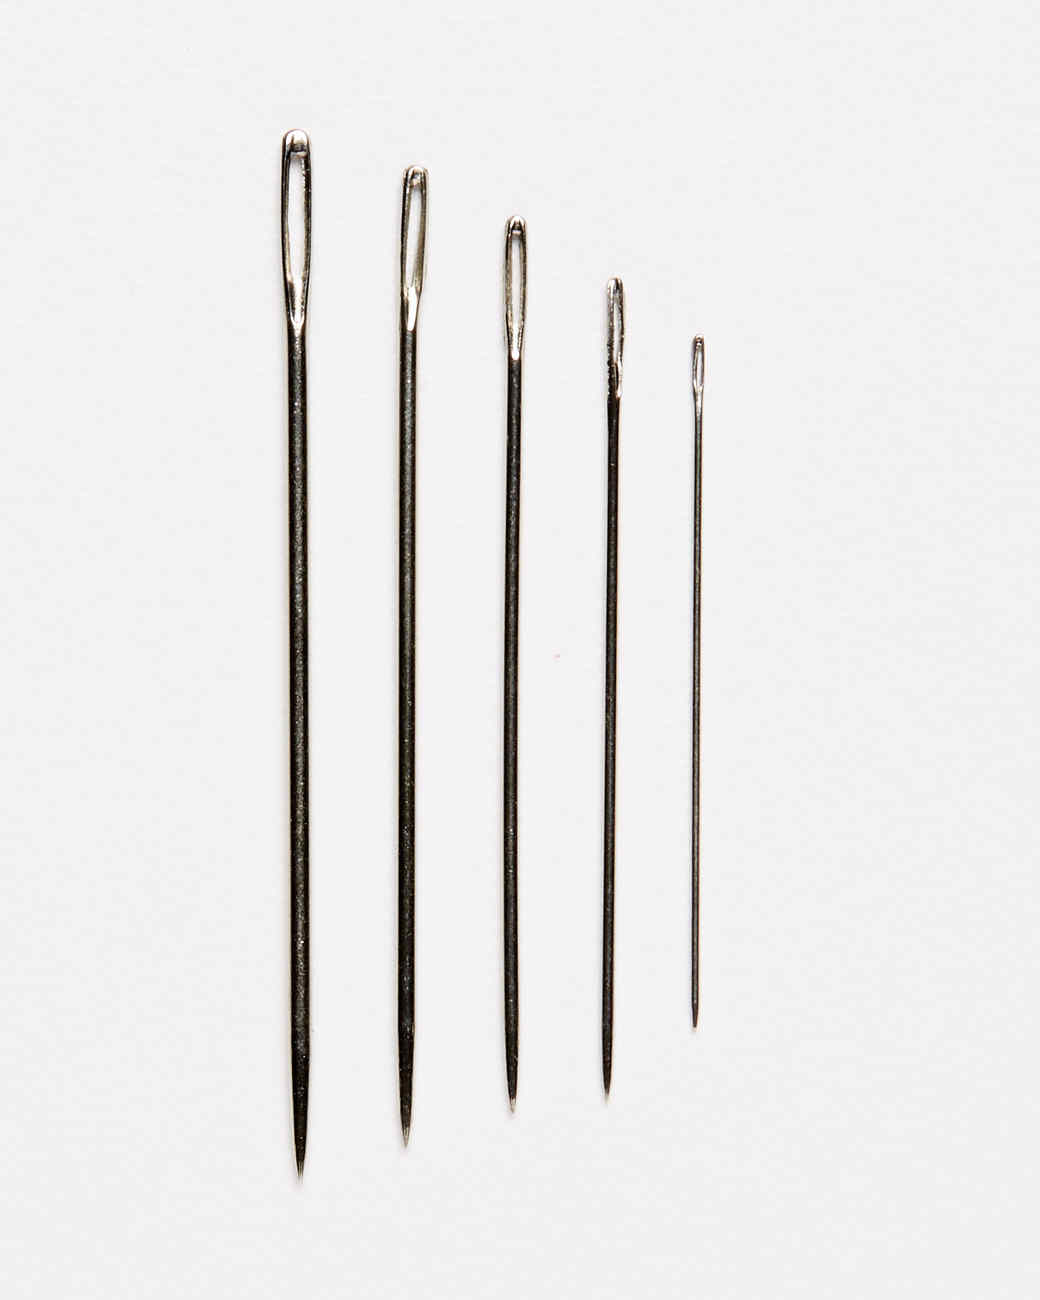 five various sizes of embroidery needles against a white background